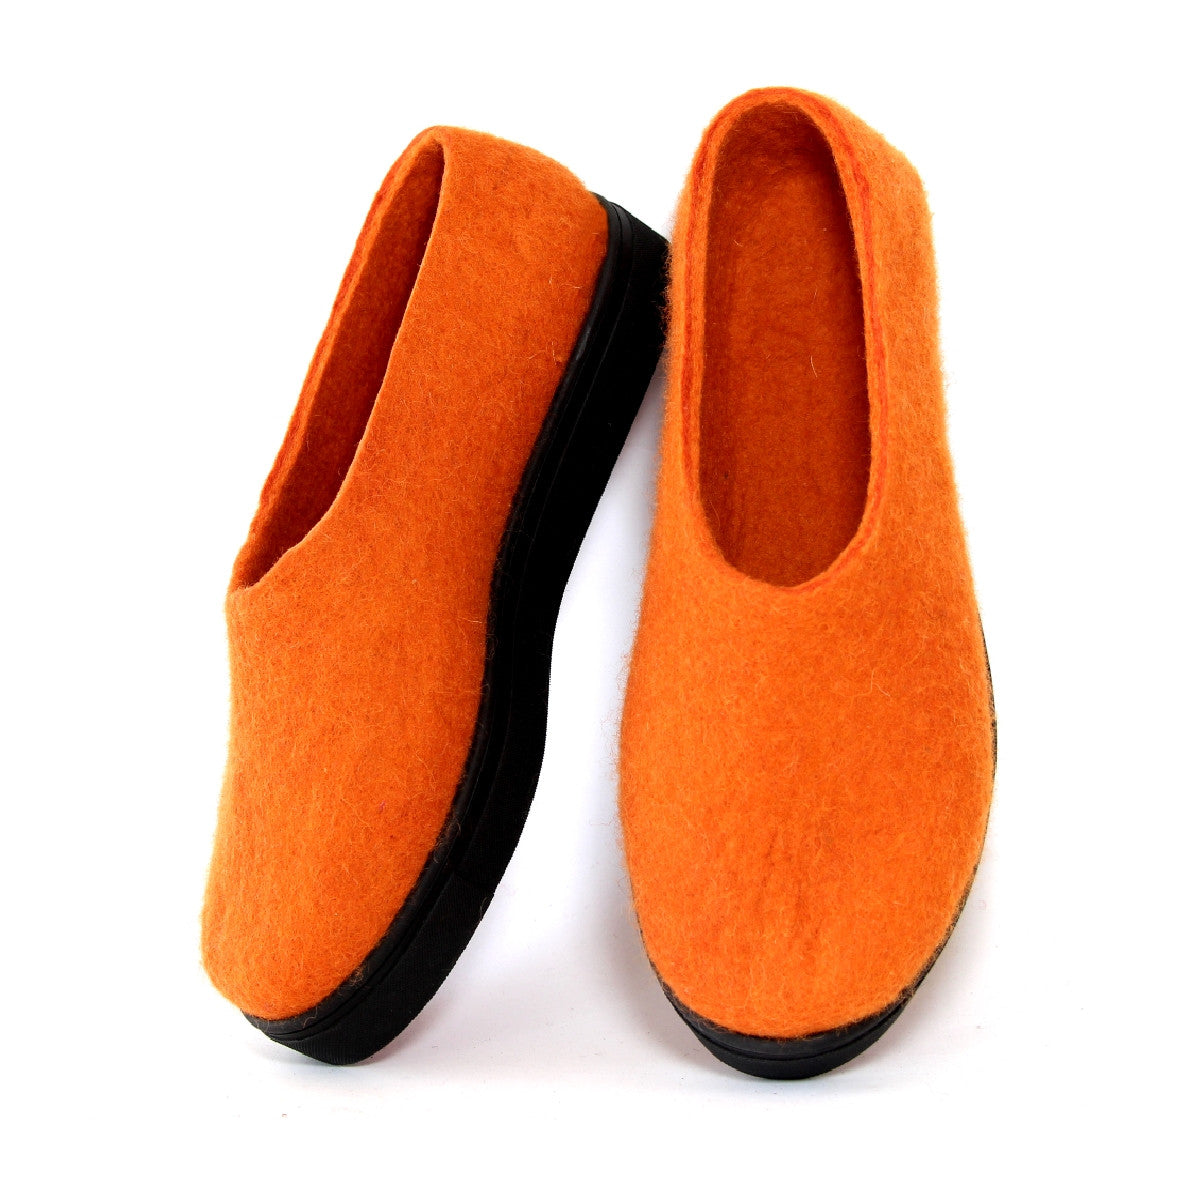 Handmade Felted Wool Felted Slippers Orange